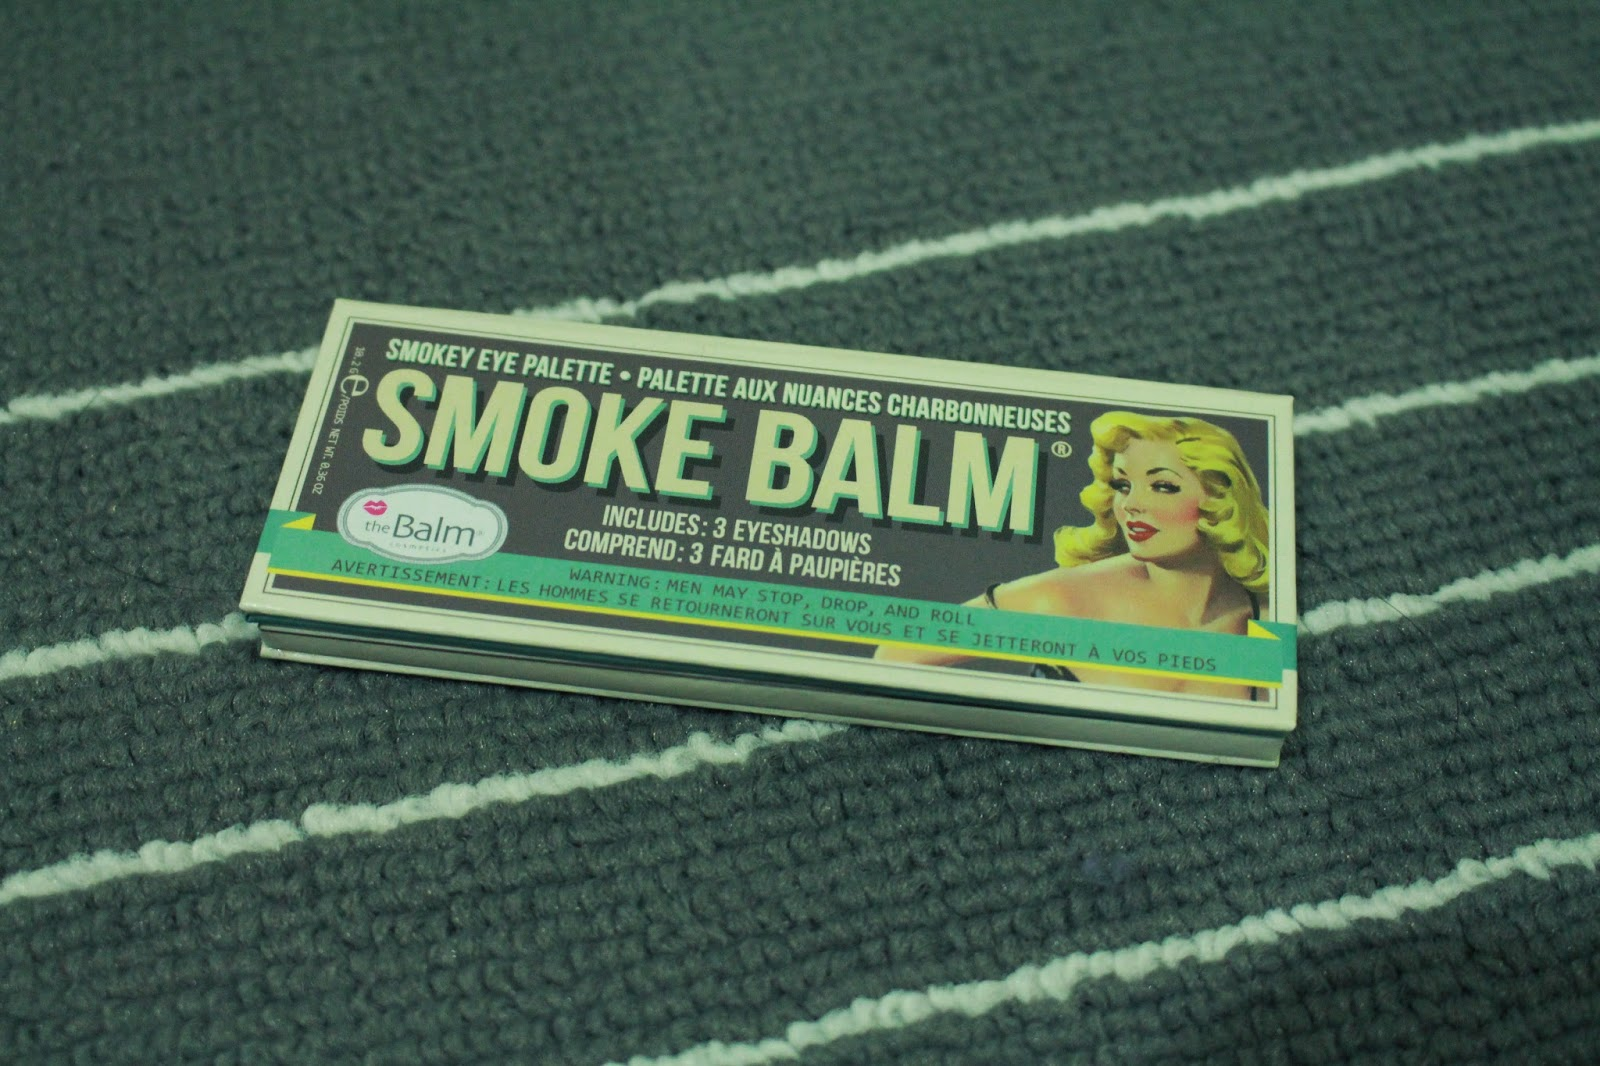 The Balm Smoke Balm Volume 1 Palette